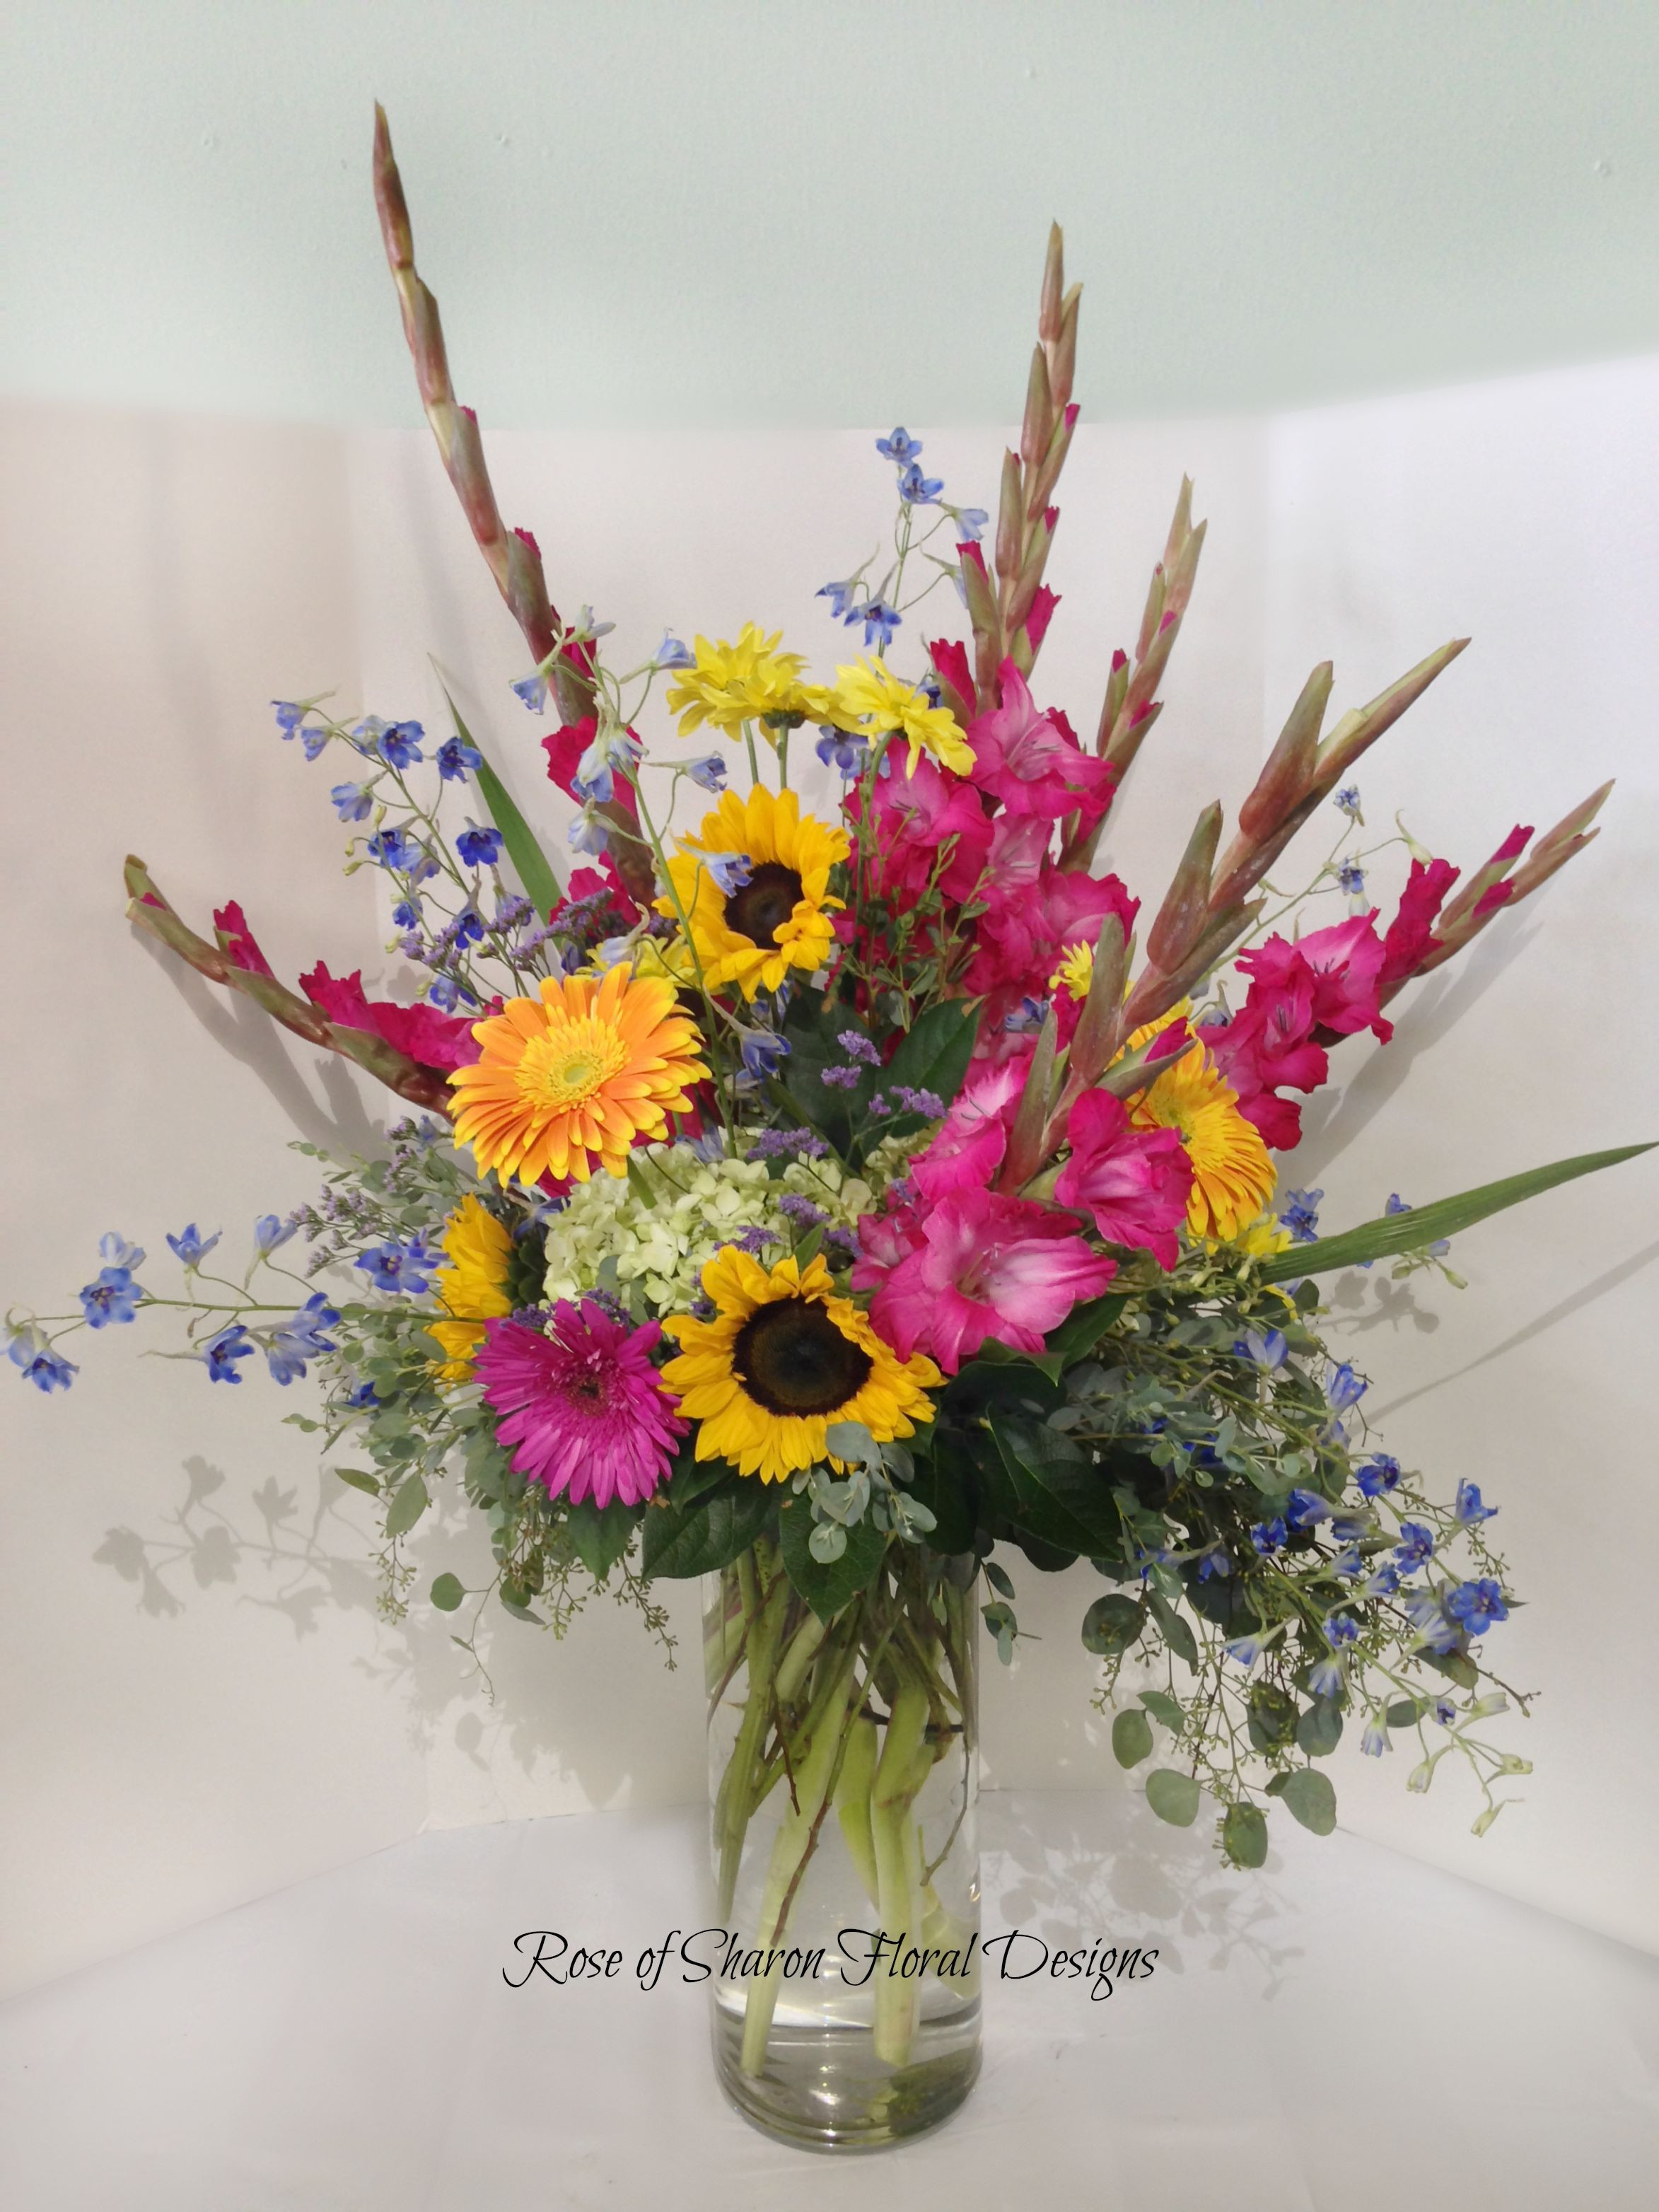 Rose of Sharon Floral Designs Sunflower Daisy and Gladiolus Arrangement